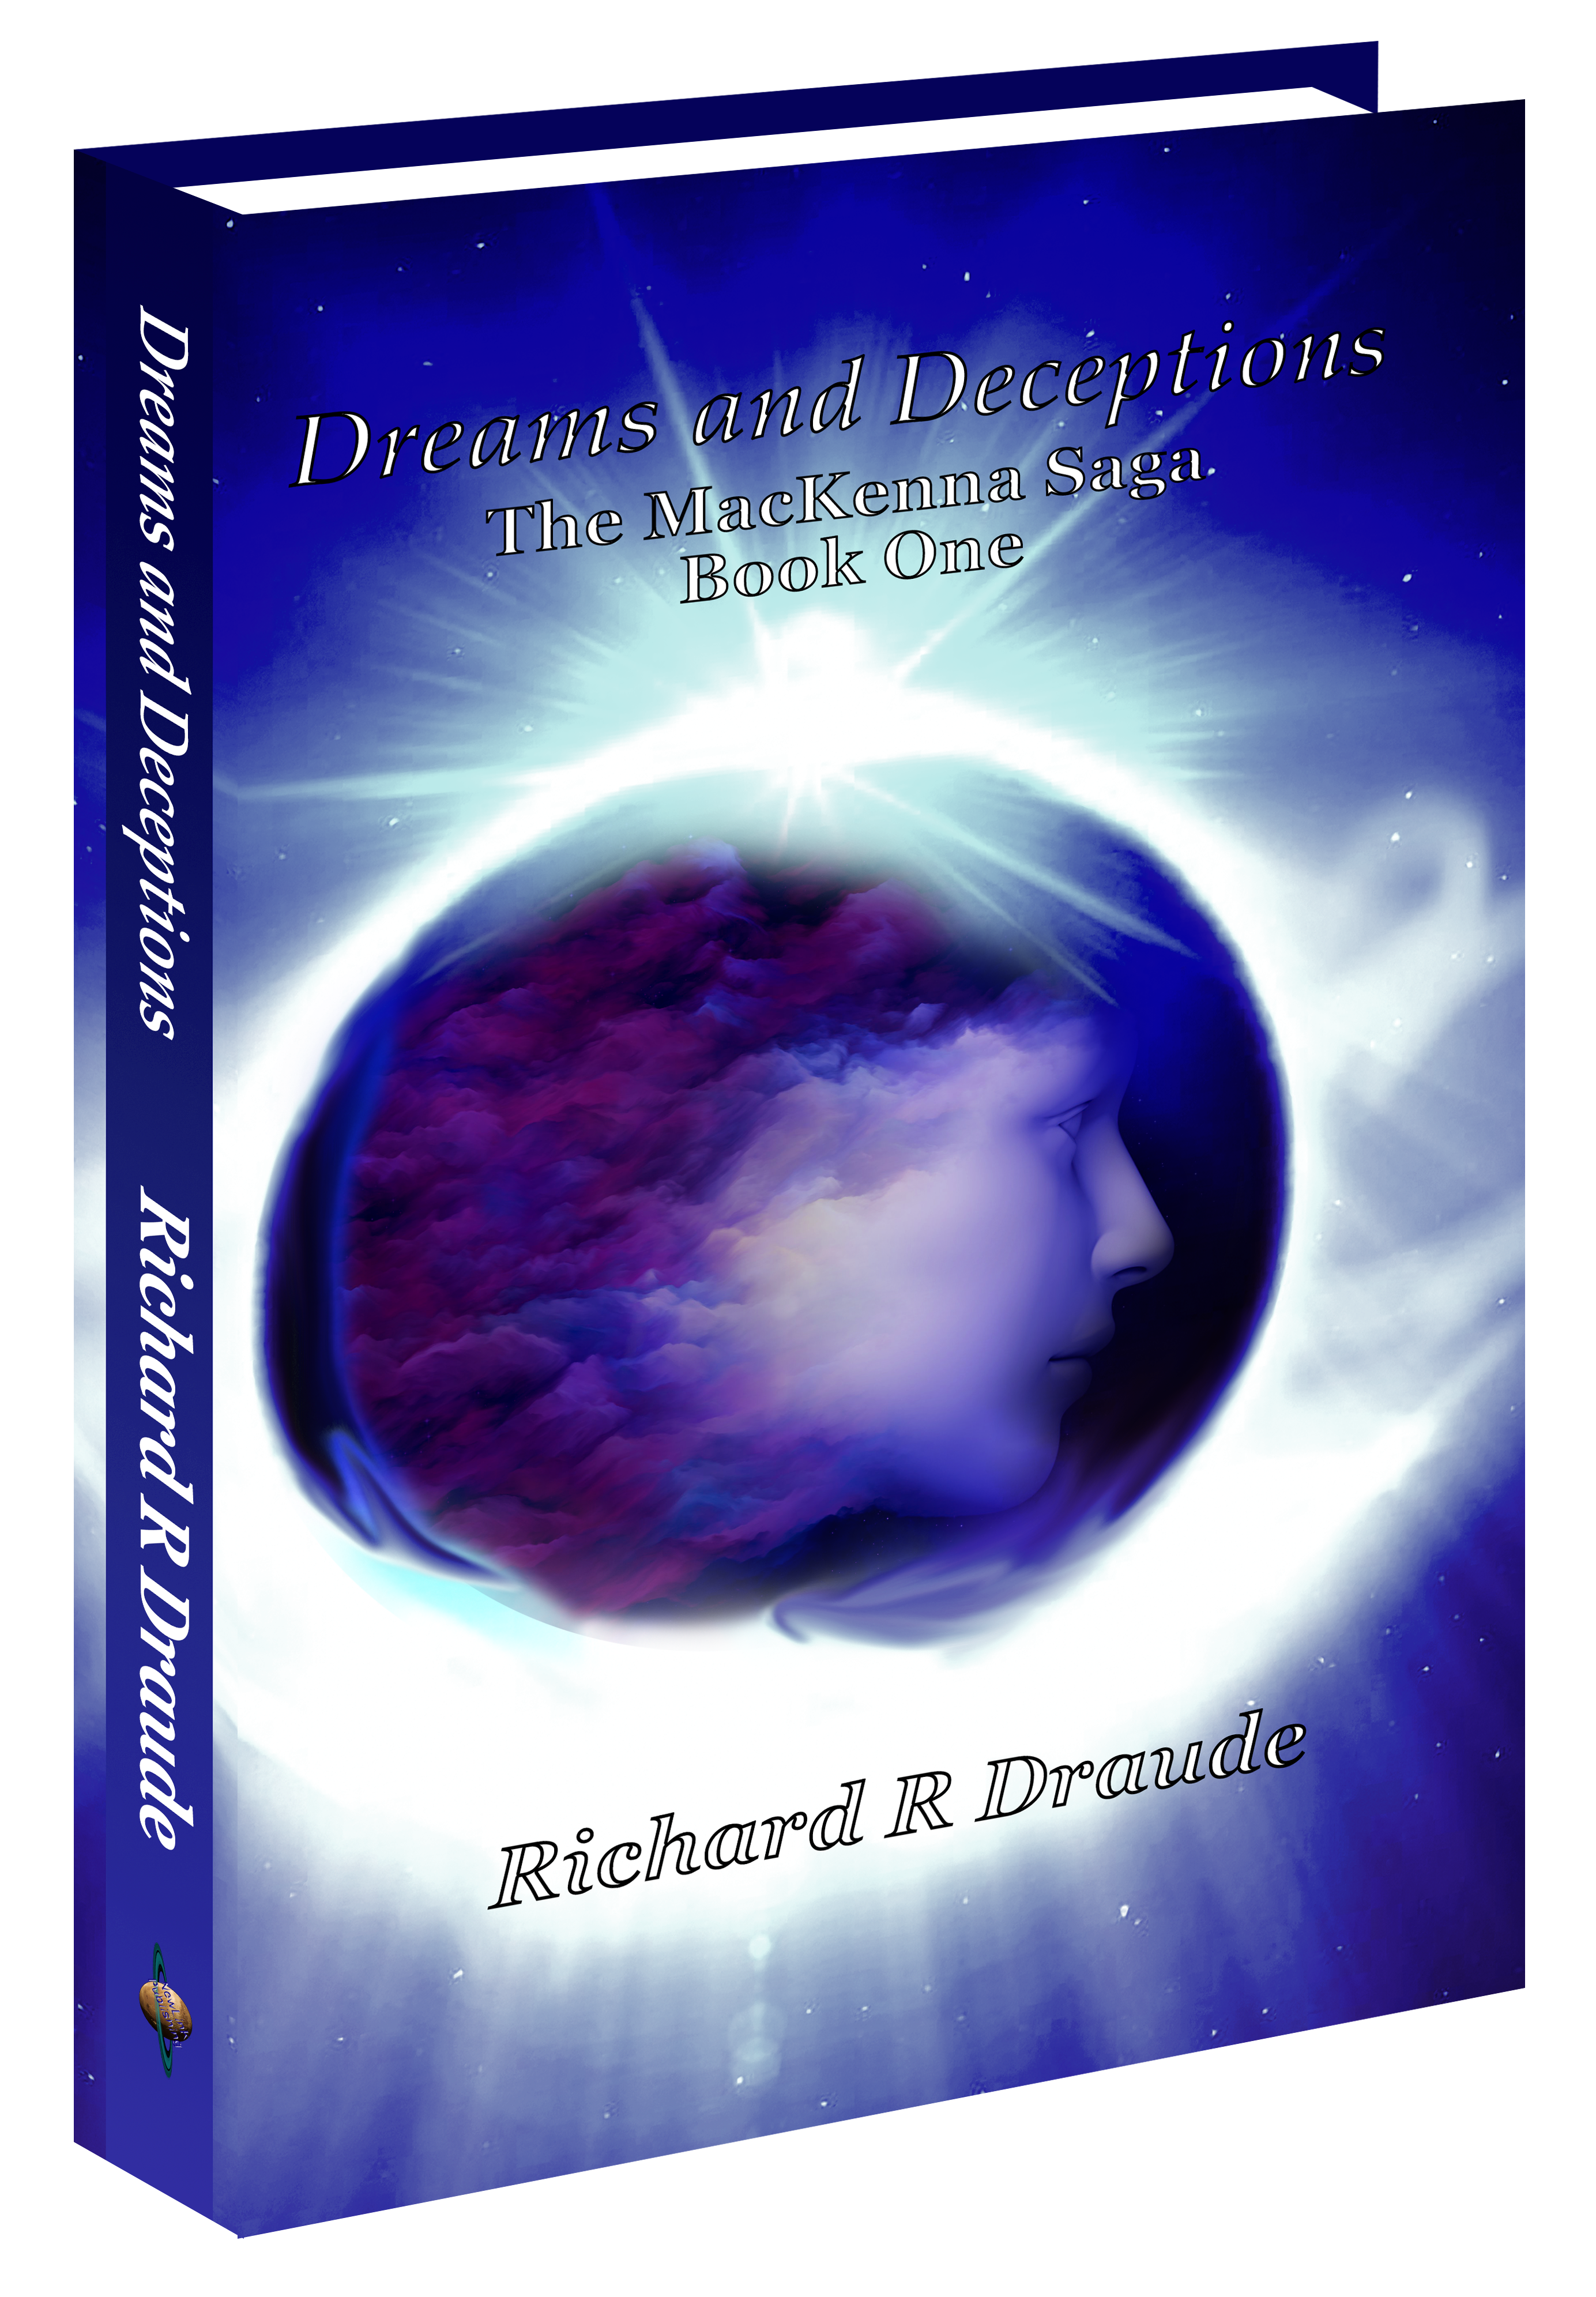 12_2019 Dreams and Deceptions ISO Cover